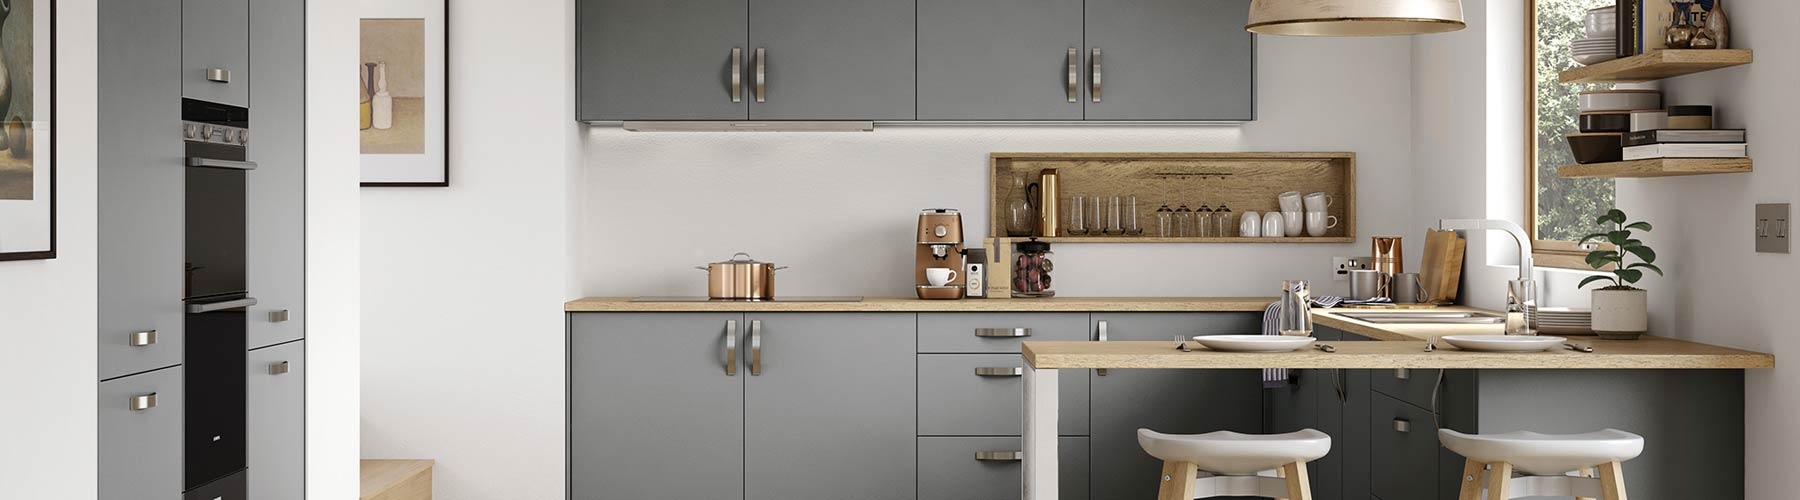 Matt slab grey contemporary kitchen with timber worktops.